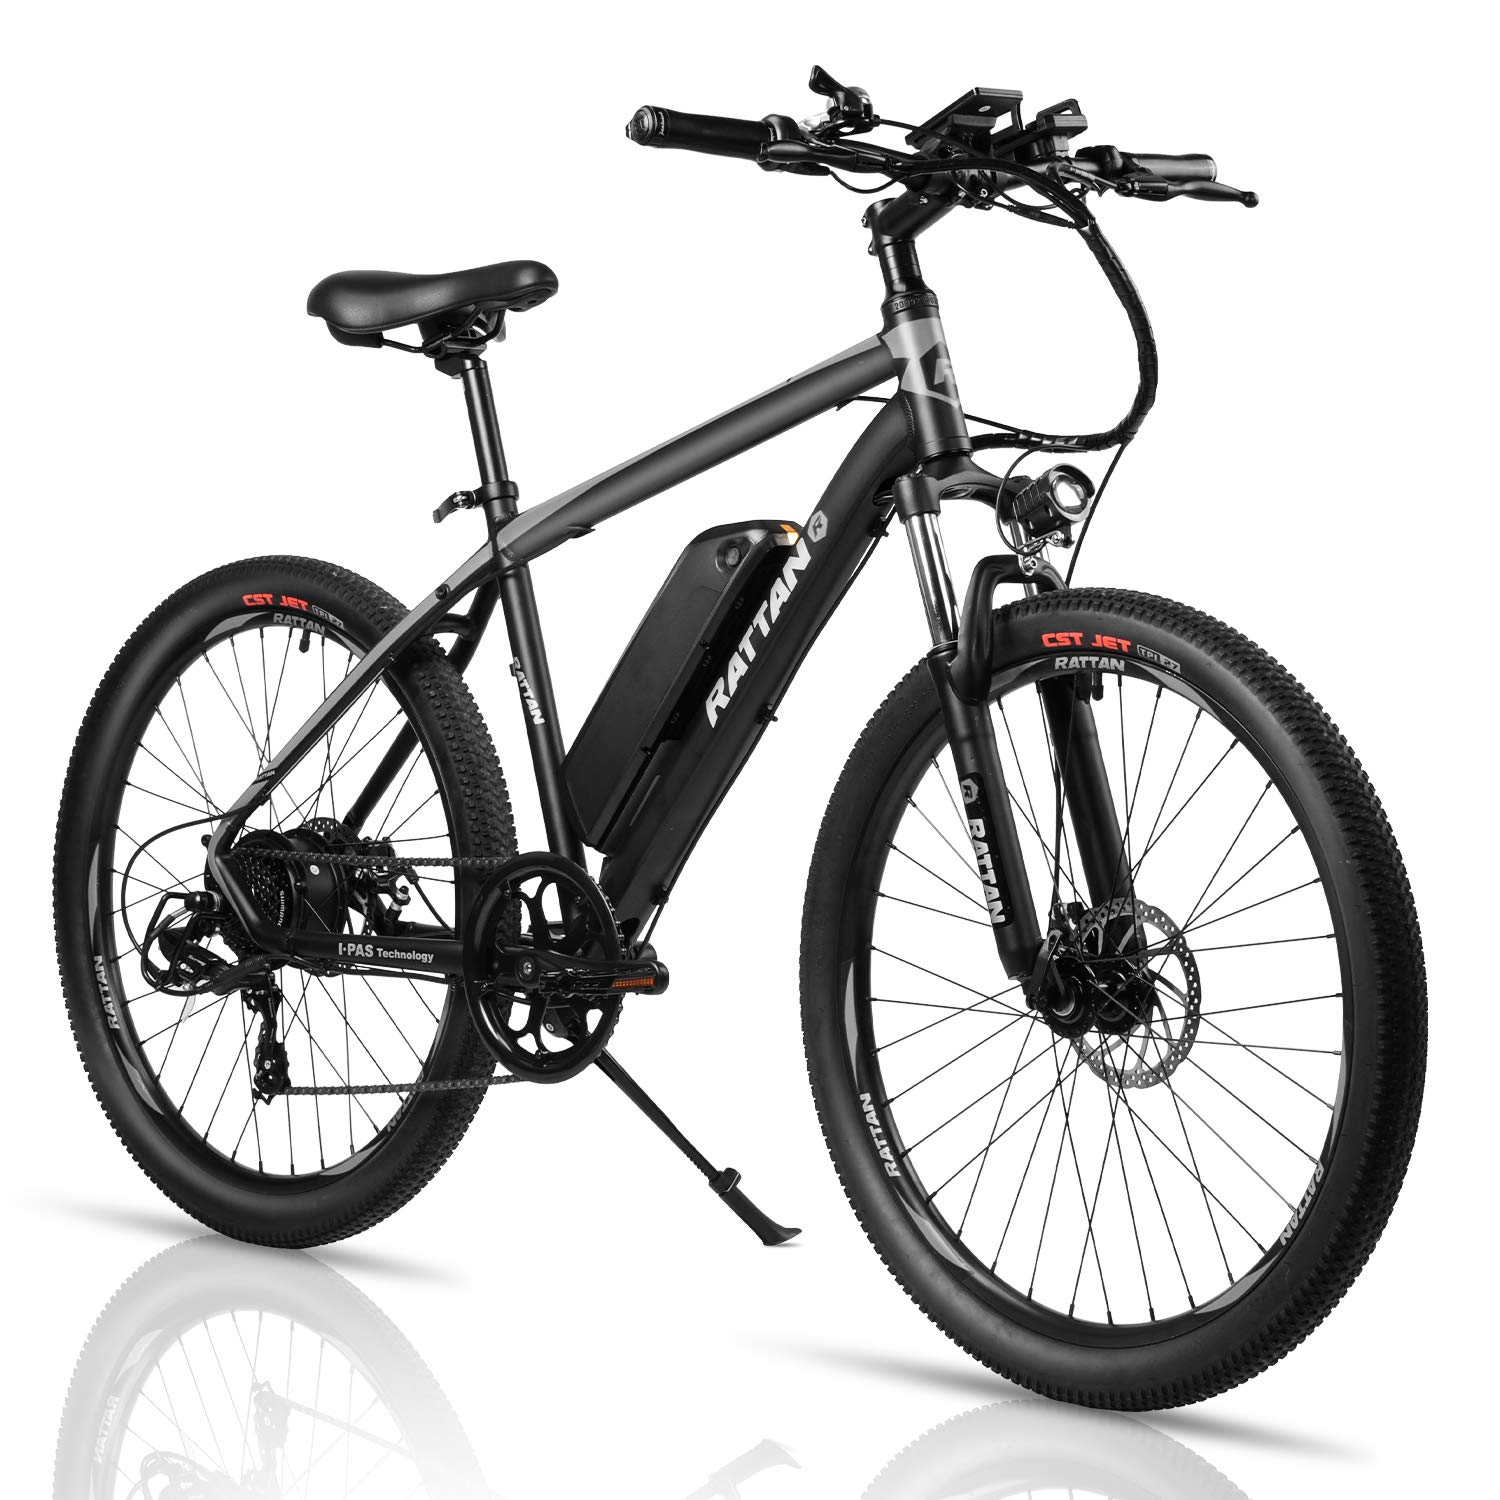 Rattan 26 Inch Mountain Electric Bicycle 36V 10.4AH Removable Lithium-ion Battery Electric Bike for Adult Smart IPAS Assisted System 350W E-Bike 7 Speed Shifter